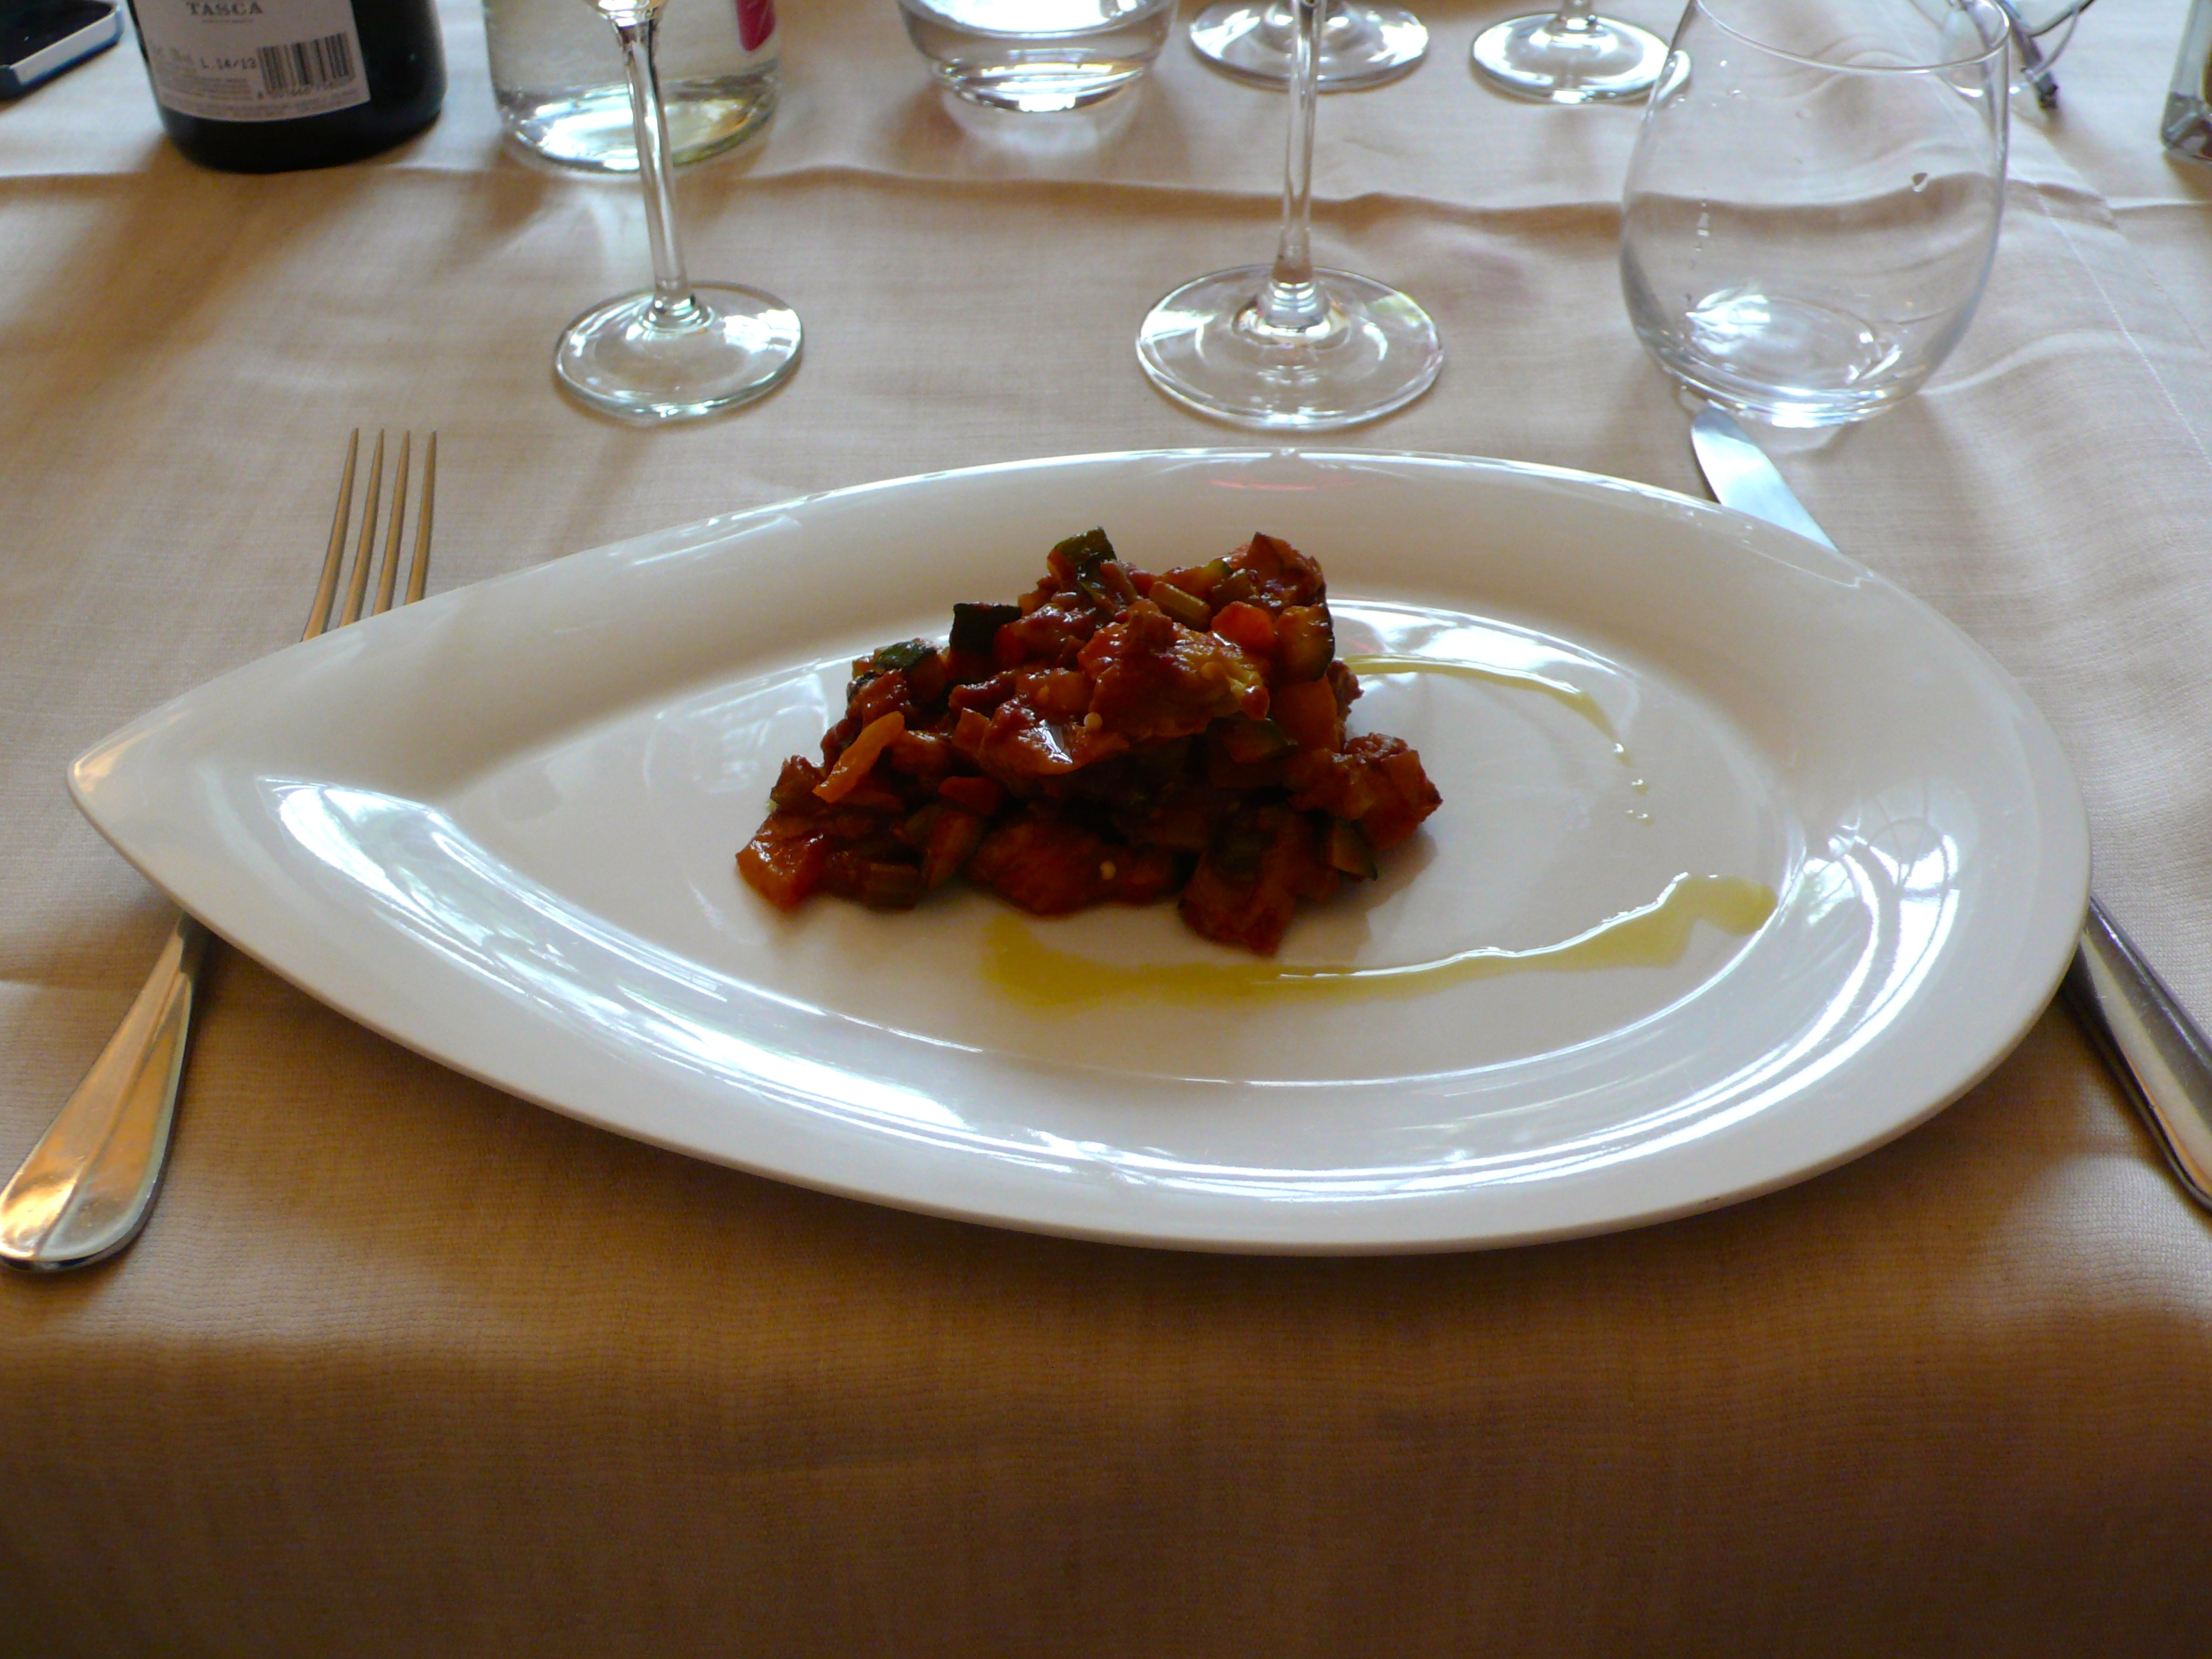 A serving of caponata. I can almost taste it!